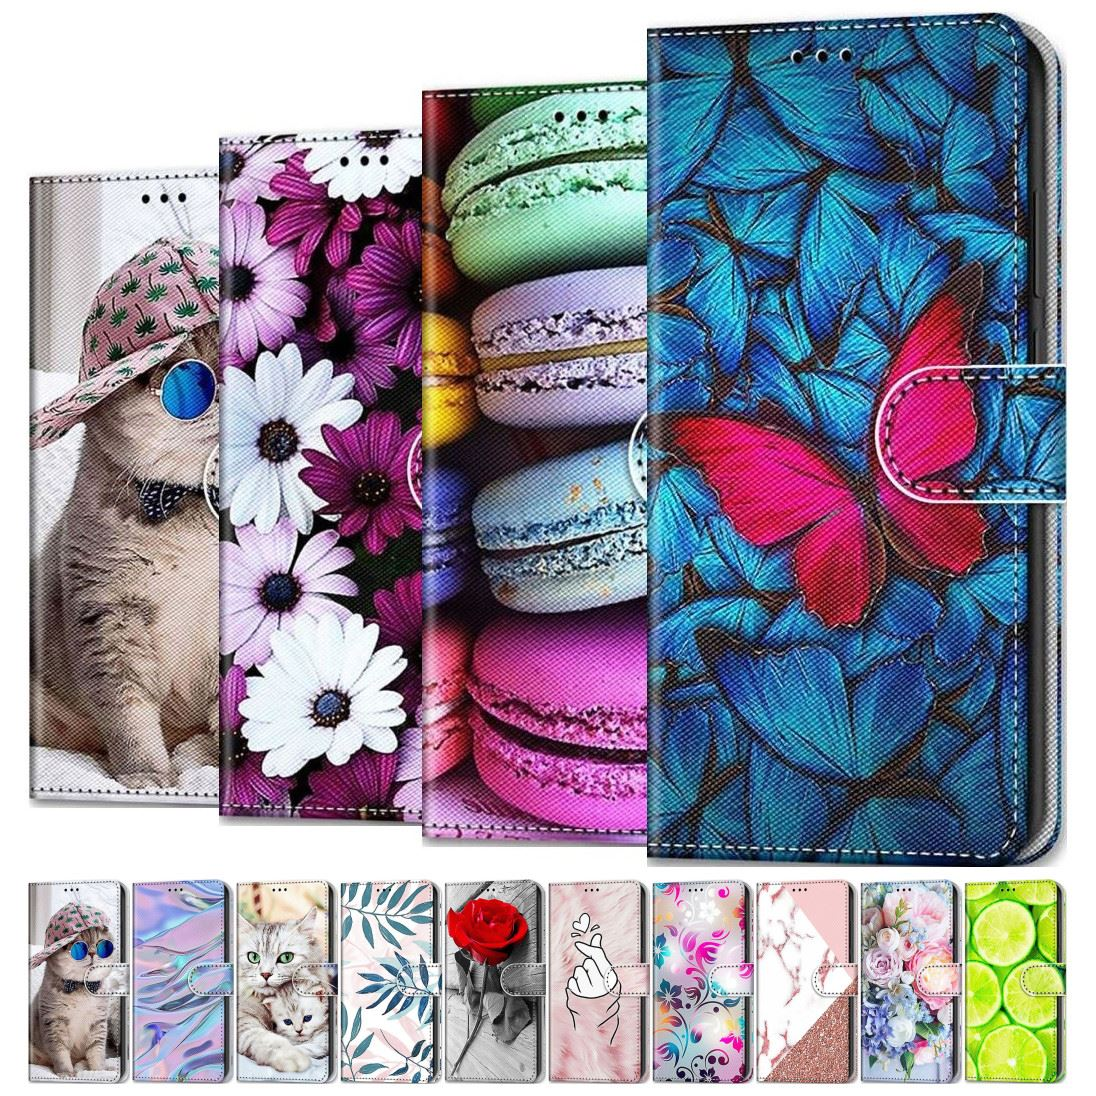 Cat Butterfly Painted Phone Shell For Case Huawei Honor Honor 20 10 9 8 Lite 9X 6A 6C Pro 7S 8S V9 P